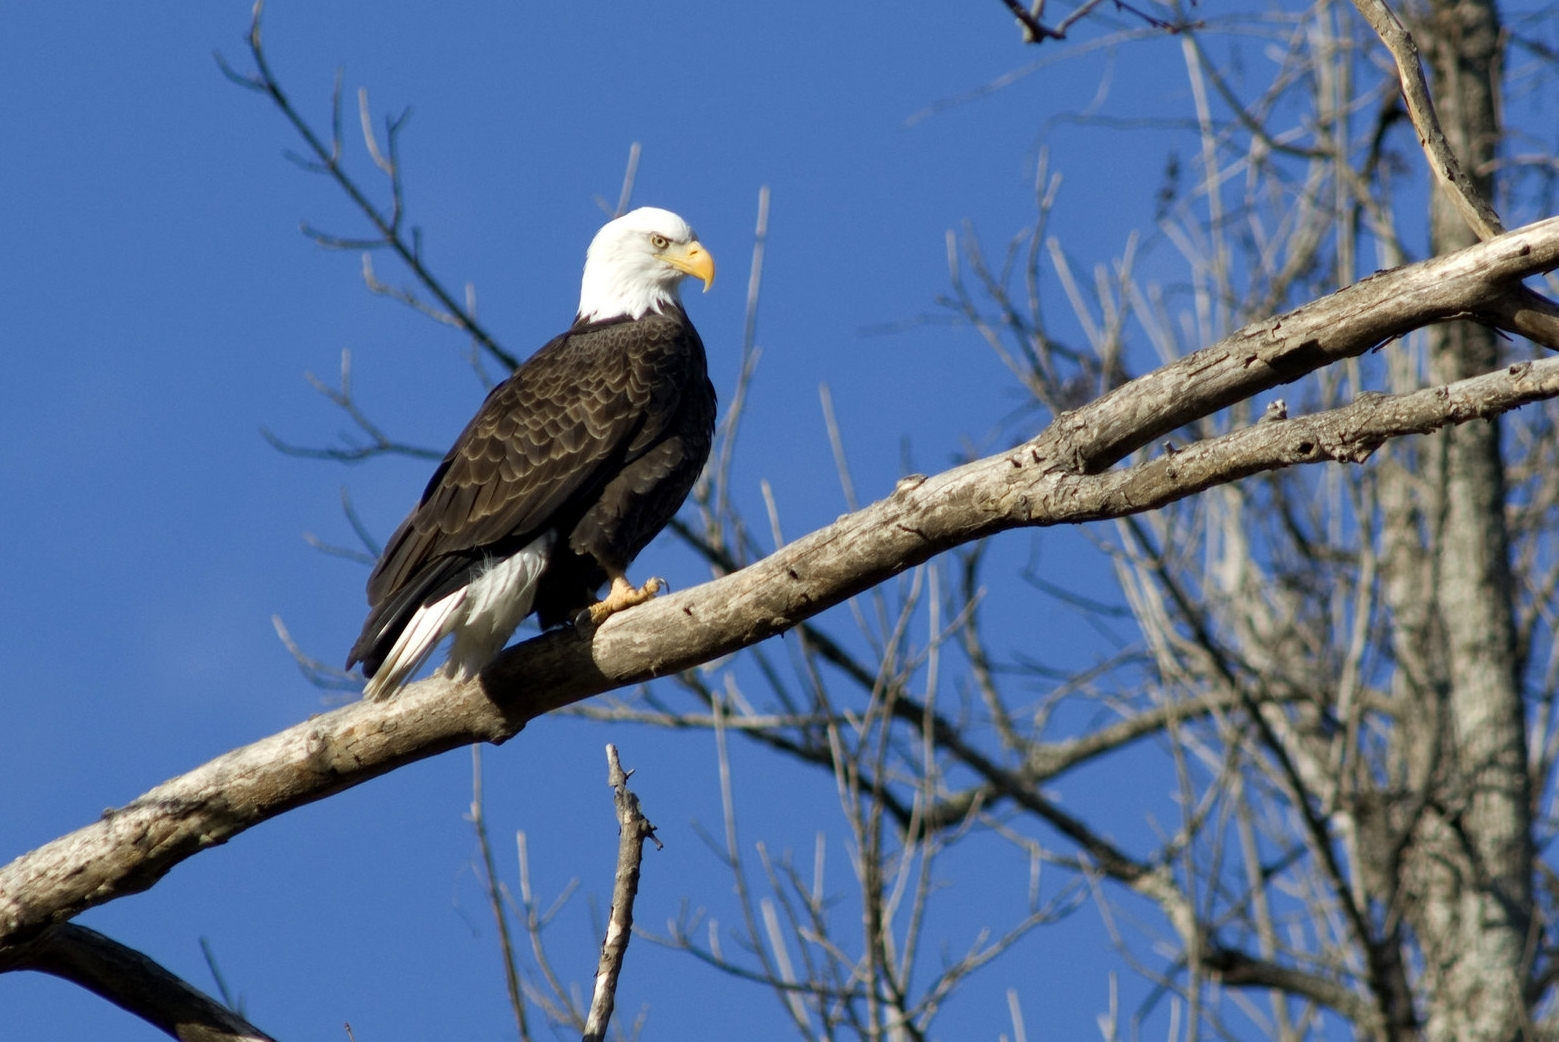 Bald eagles (like this one on Bull shoals lake) are one of arkansas' most well-known birds.